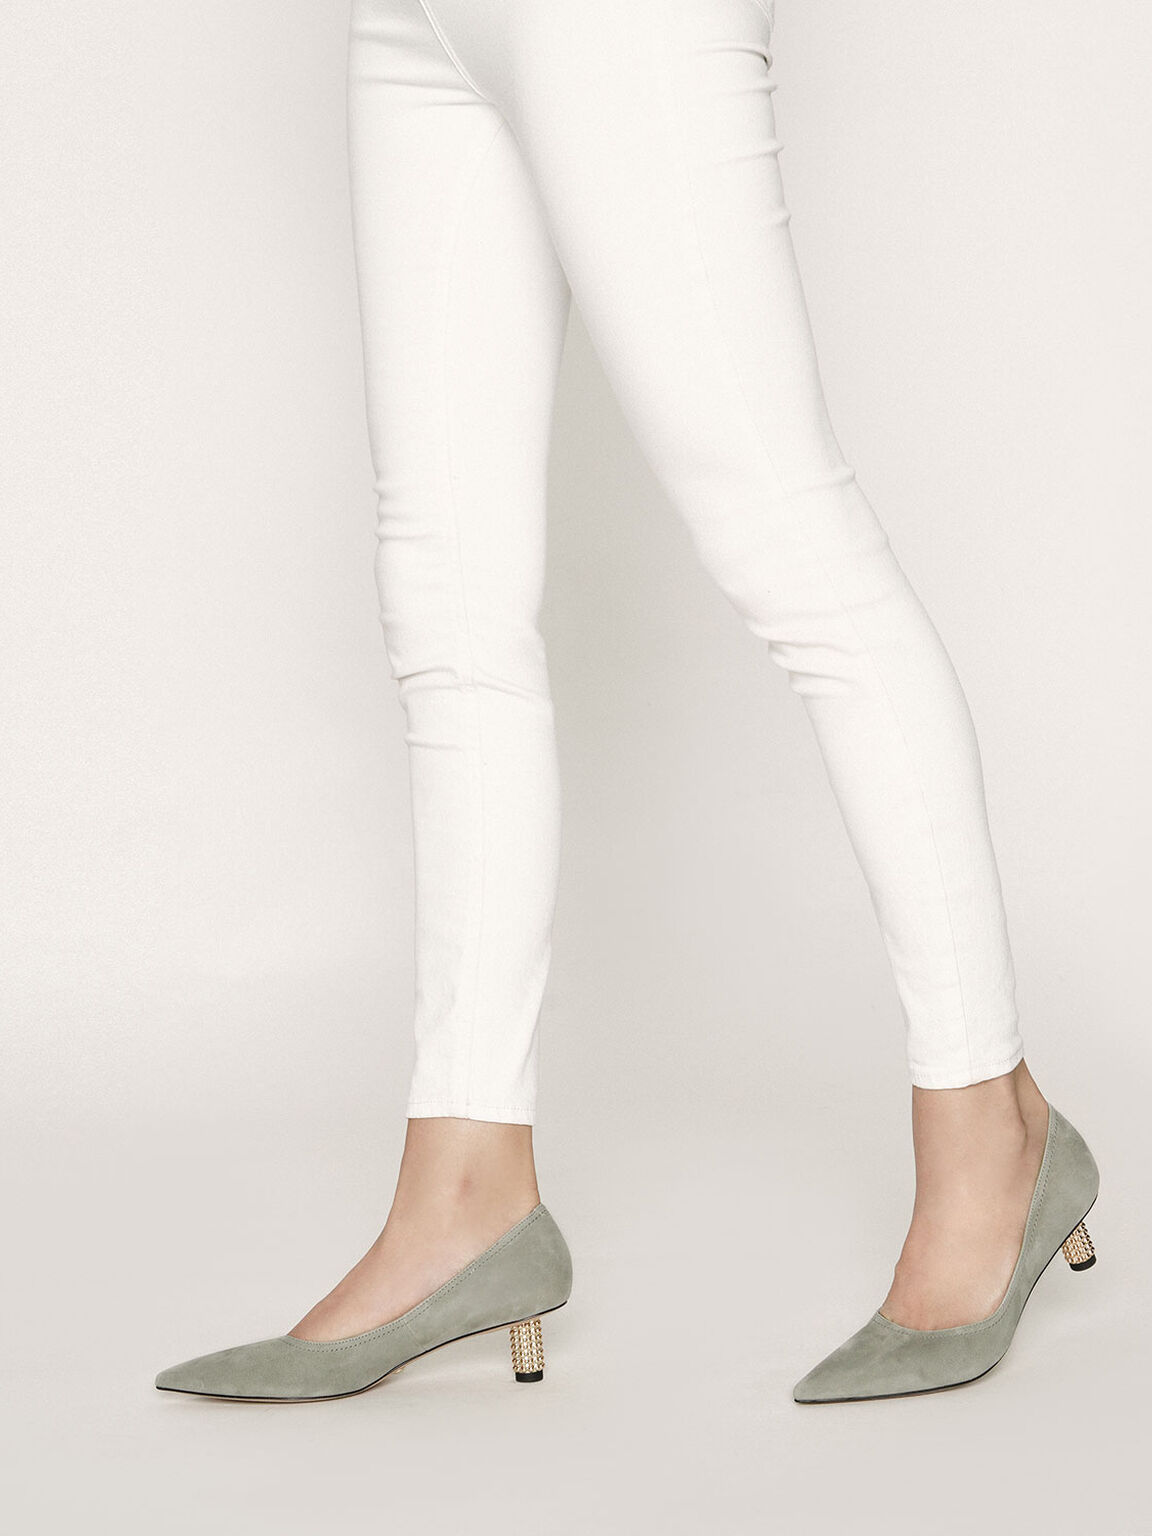 Embellished Kitten Heel Pumps (Kid Suede), Sage Green, hi-res